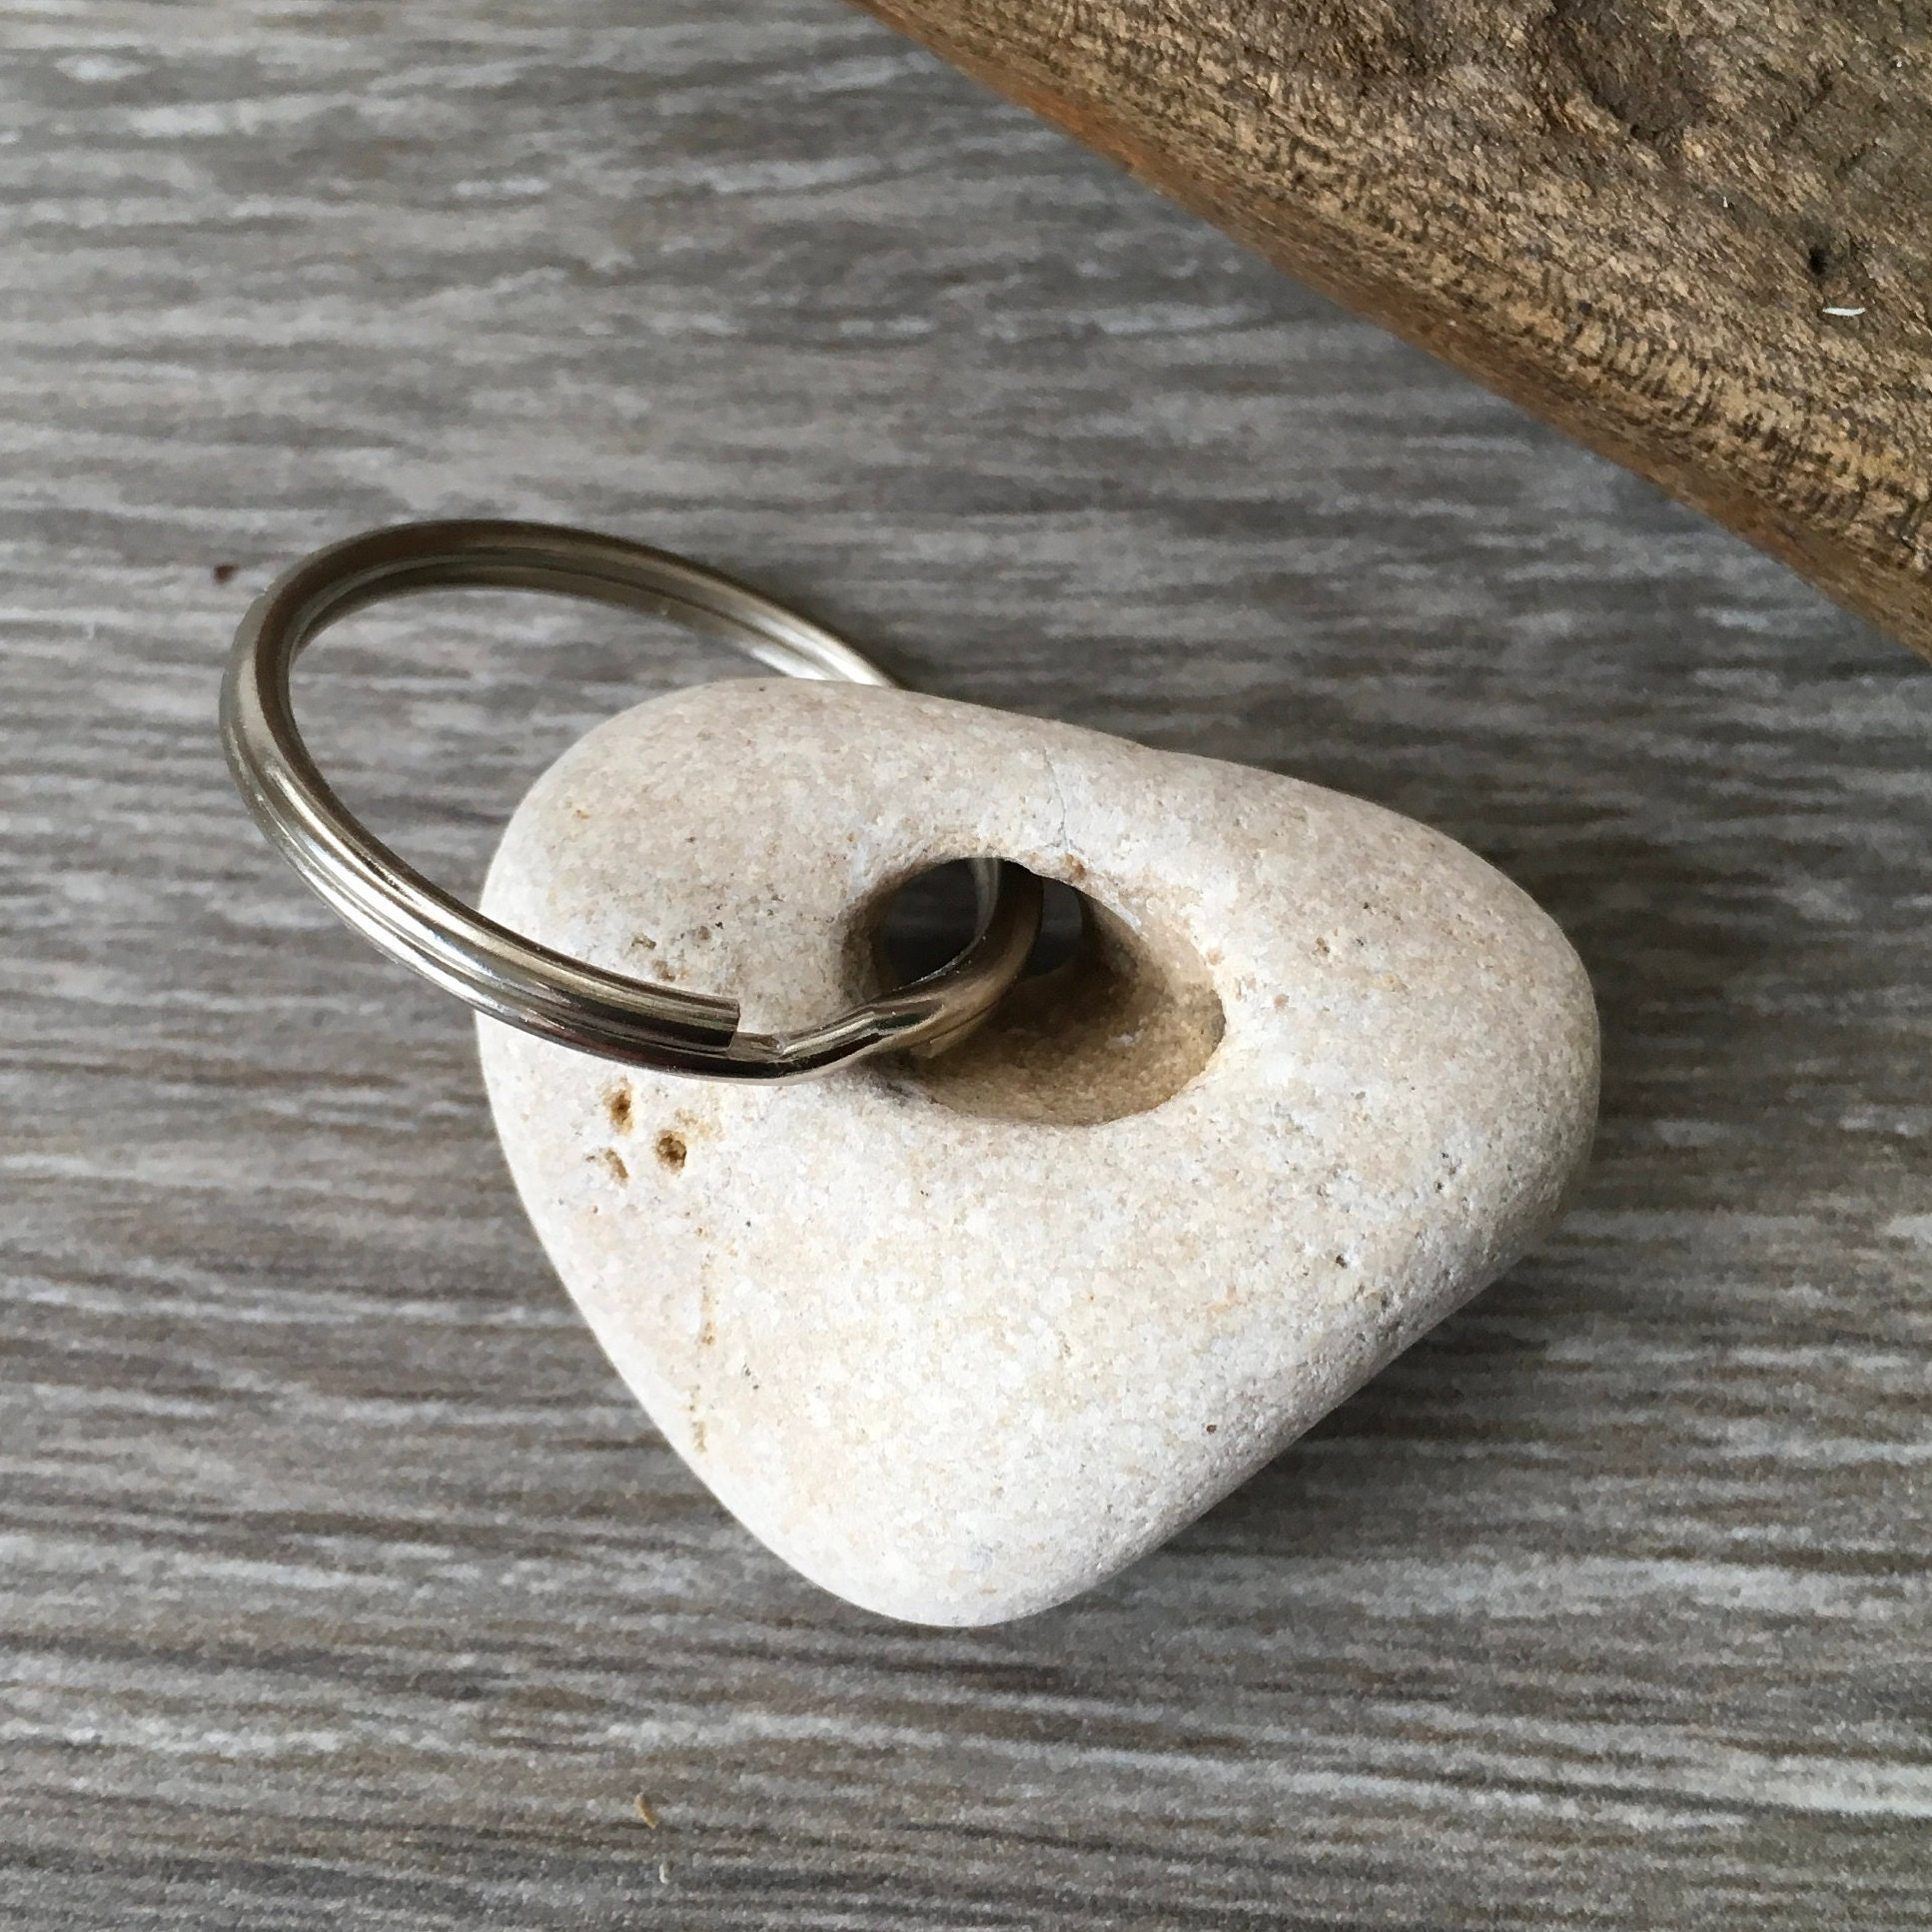 Hag Stone Keyring Beach Pebble Key Fob Beach Rock Key Chain Natural Rock Found Pebble Small Gift For A Man Holey Pebble From Cornwall A hag stone is forged by the power of water, either the sea or rivers, when over centuries the endless action of the waves creates a magical hole within the stone. hag stone keyring beach pebble key fob